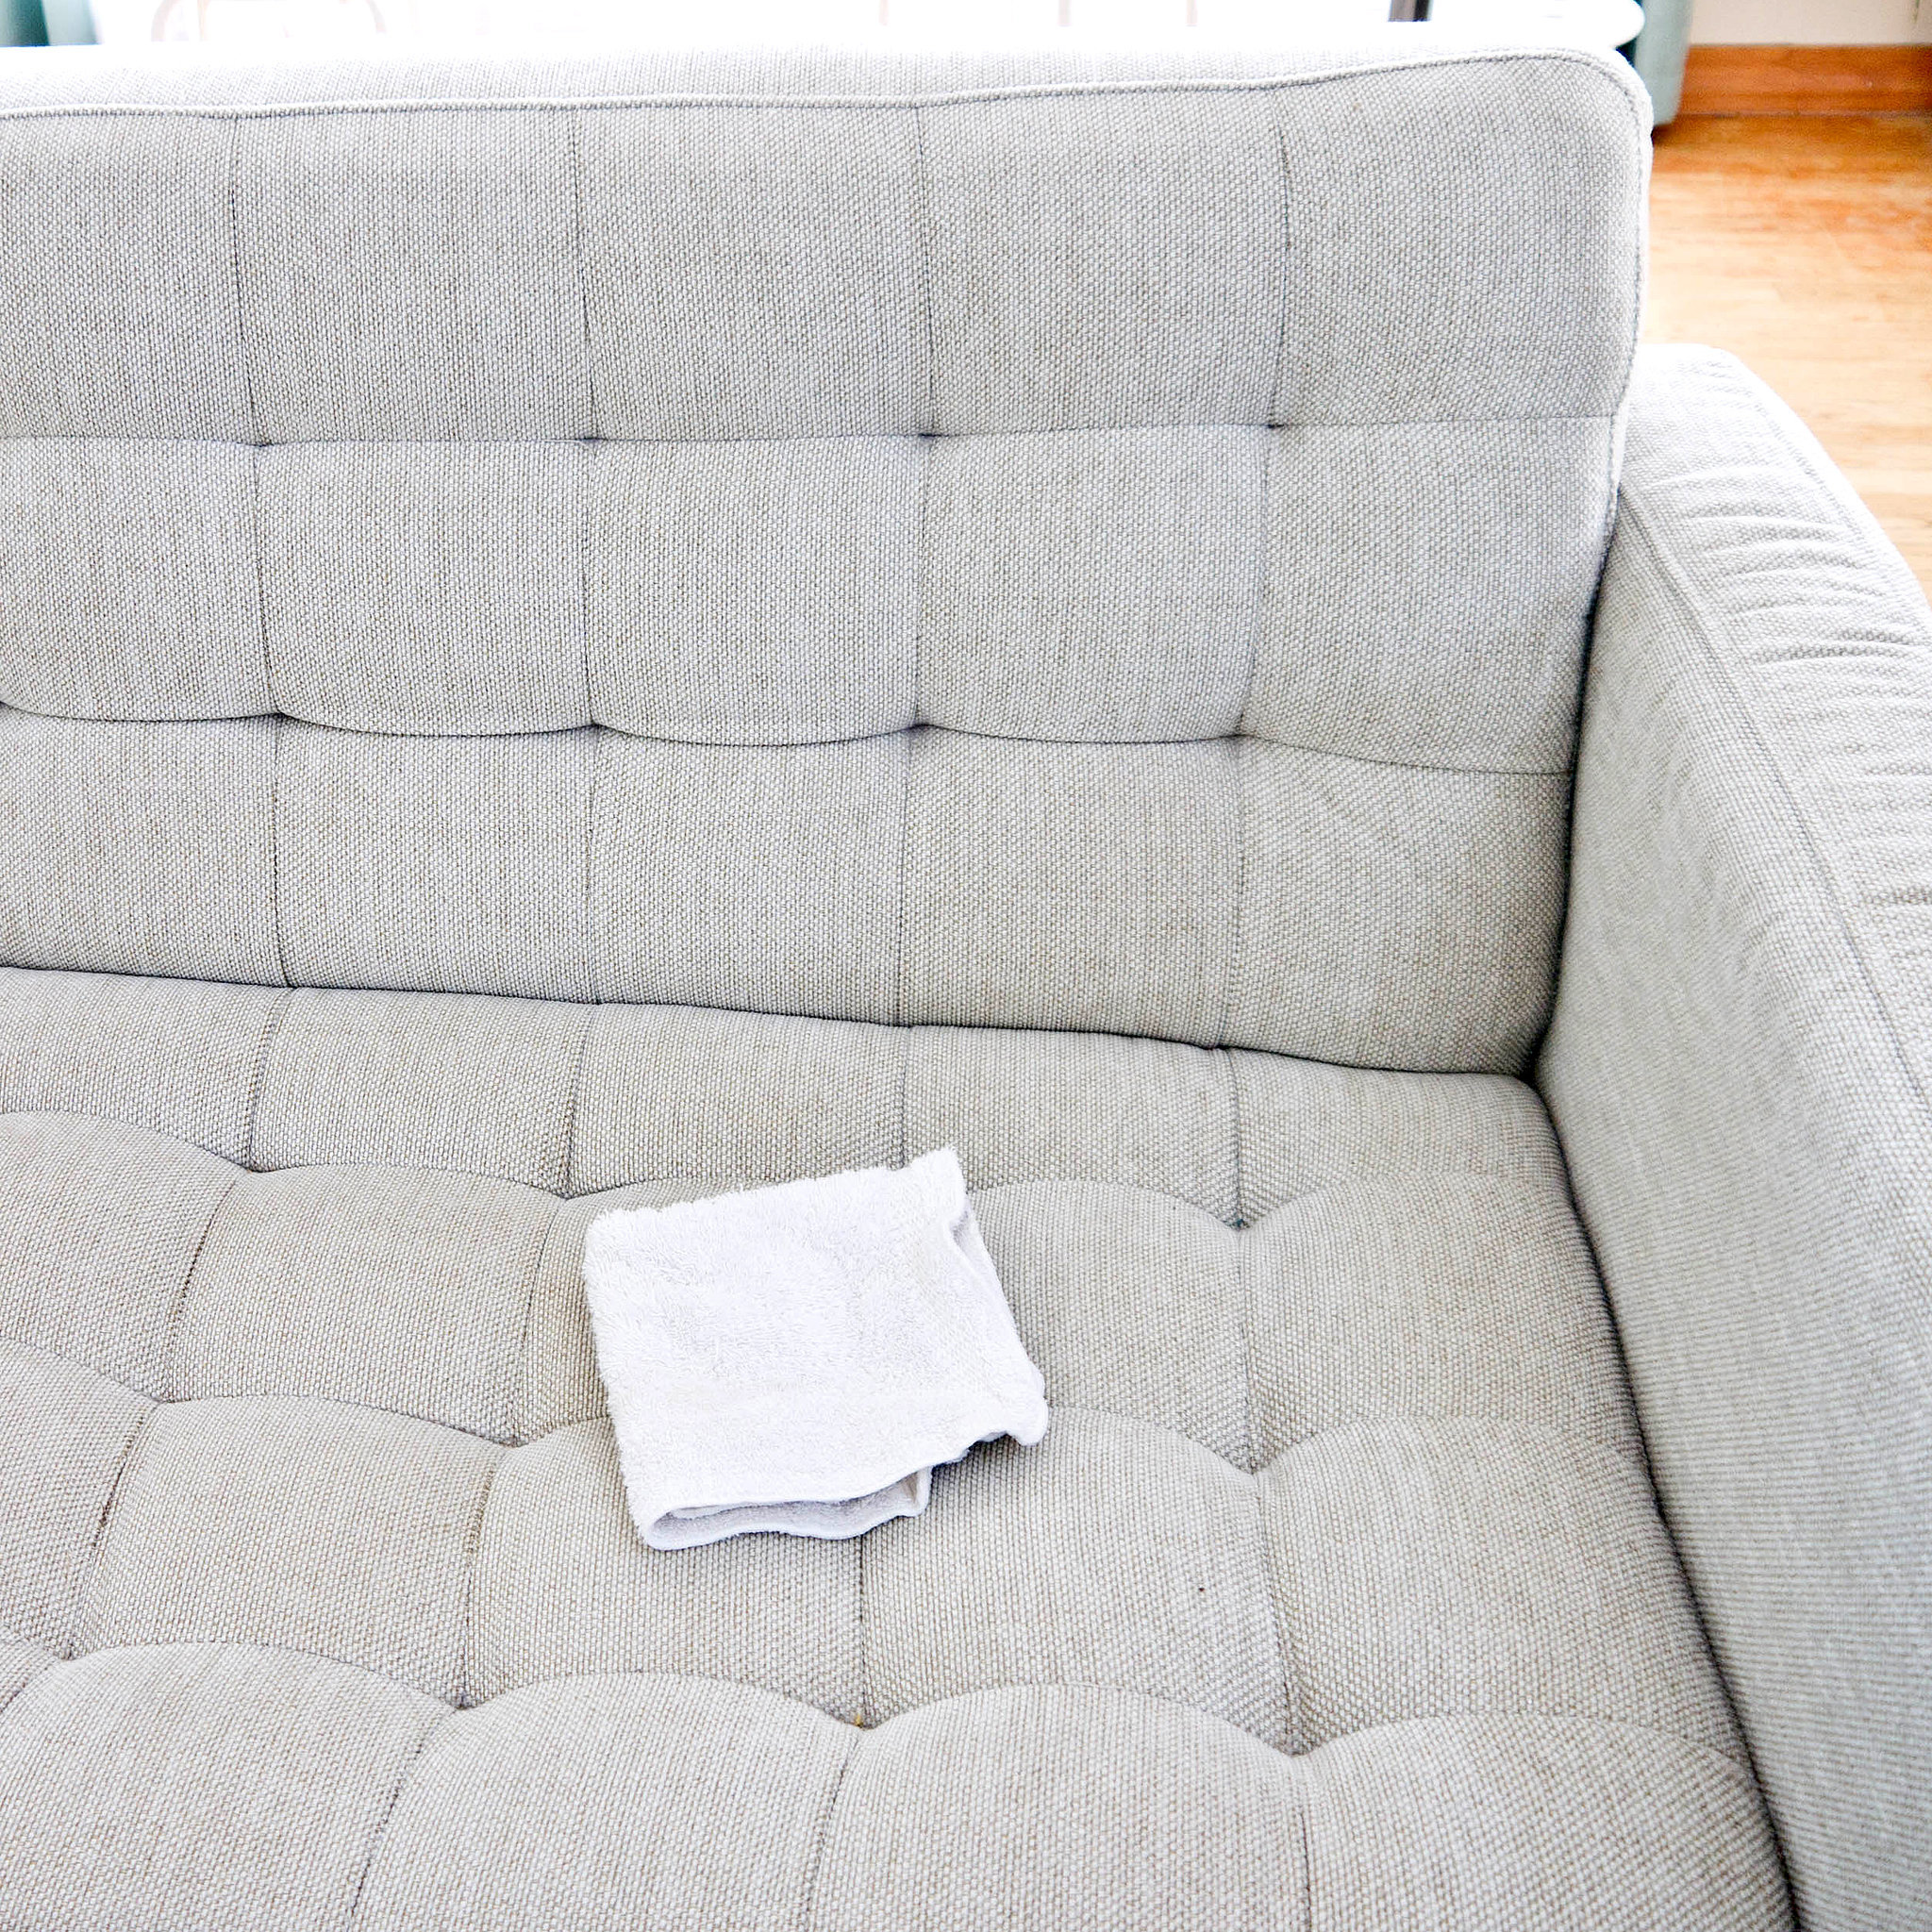 cleaning cleaner upholstery steam yourself couches interior ideas service couch do microfiber how awesome it dry or clean charming to carpet sofa sydney sears